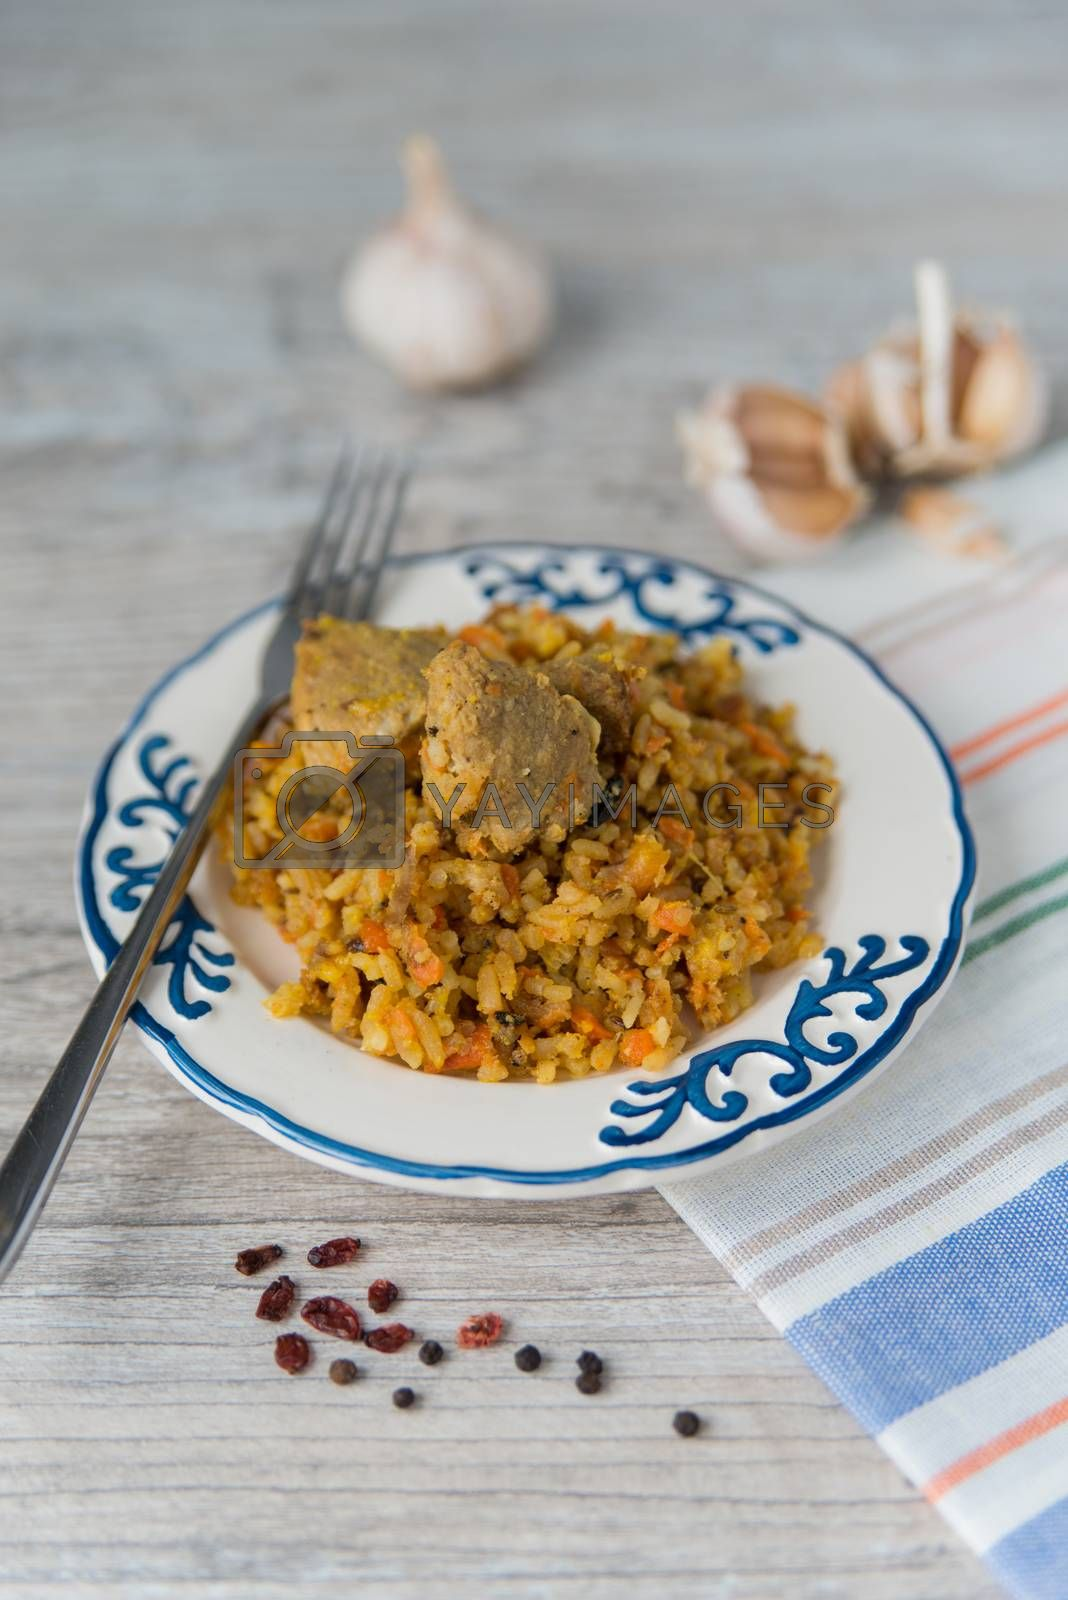 Royalty free image of Plate of rice and meat dish pilau by Linaga